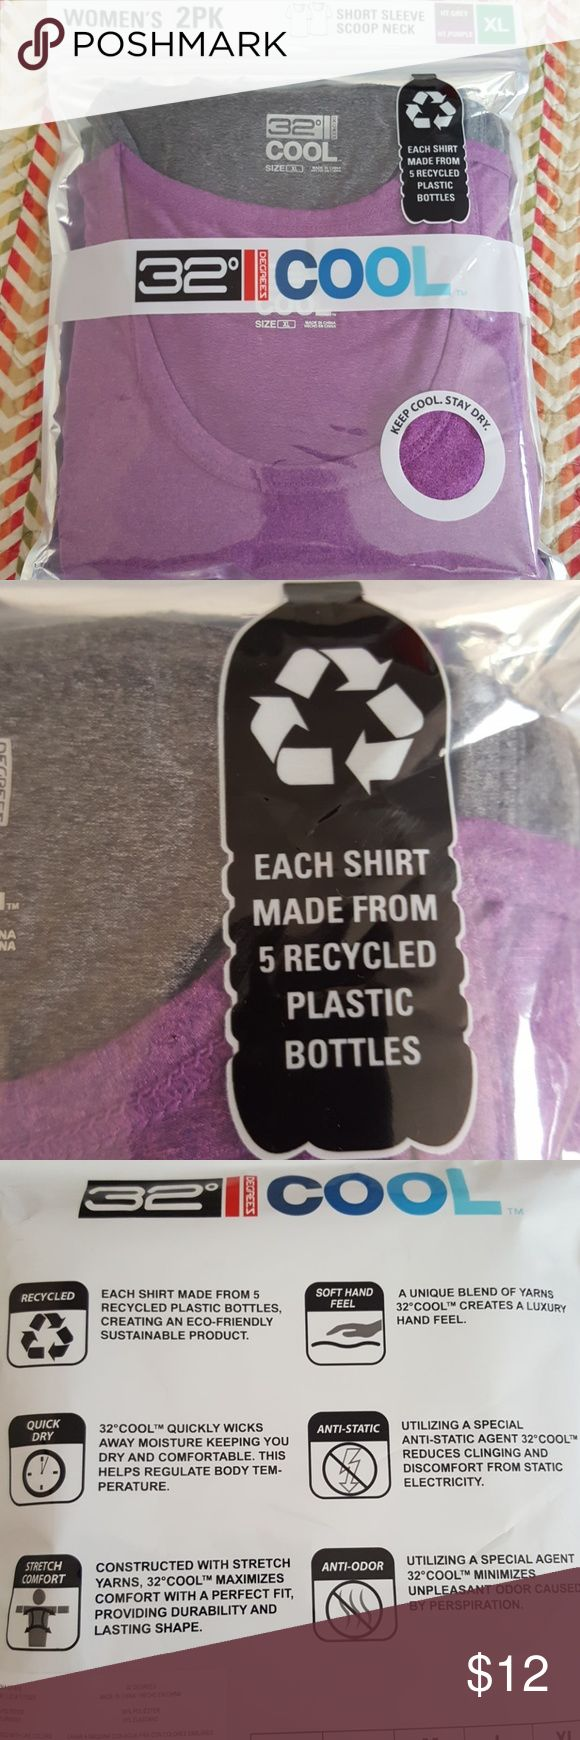 2 pk 32 degrees cool purple gray athletic t shirt Nwt scc pic for details ... runs small 32 degrees cool Tops Tees - Short Sleeve